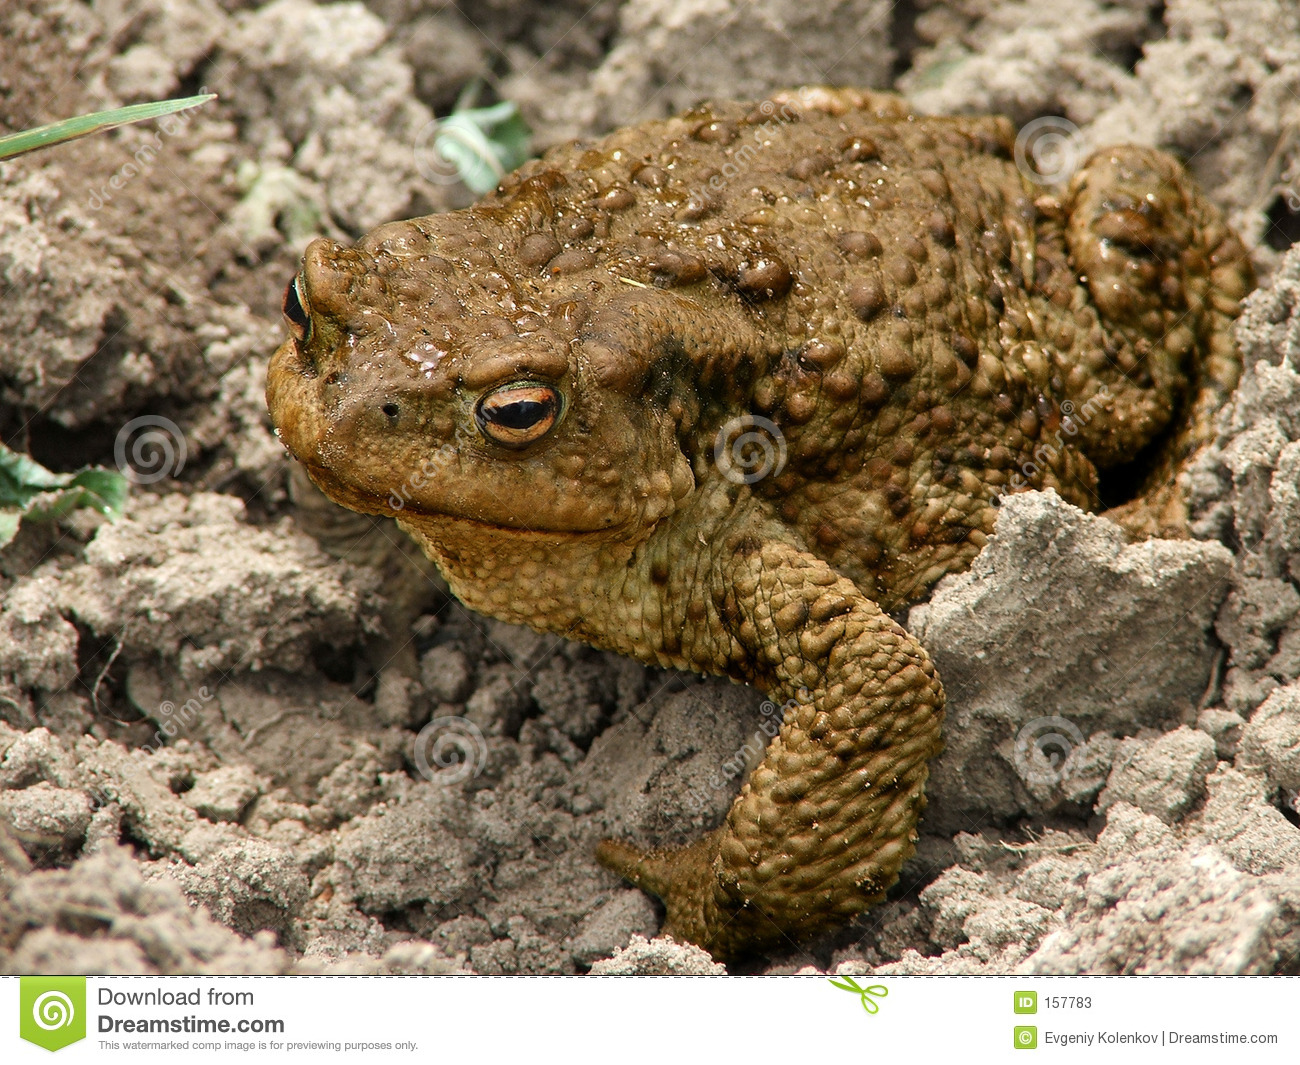 The big toad